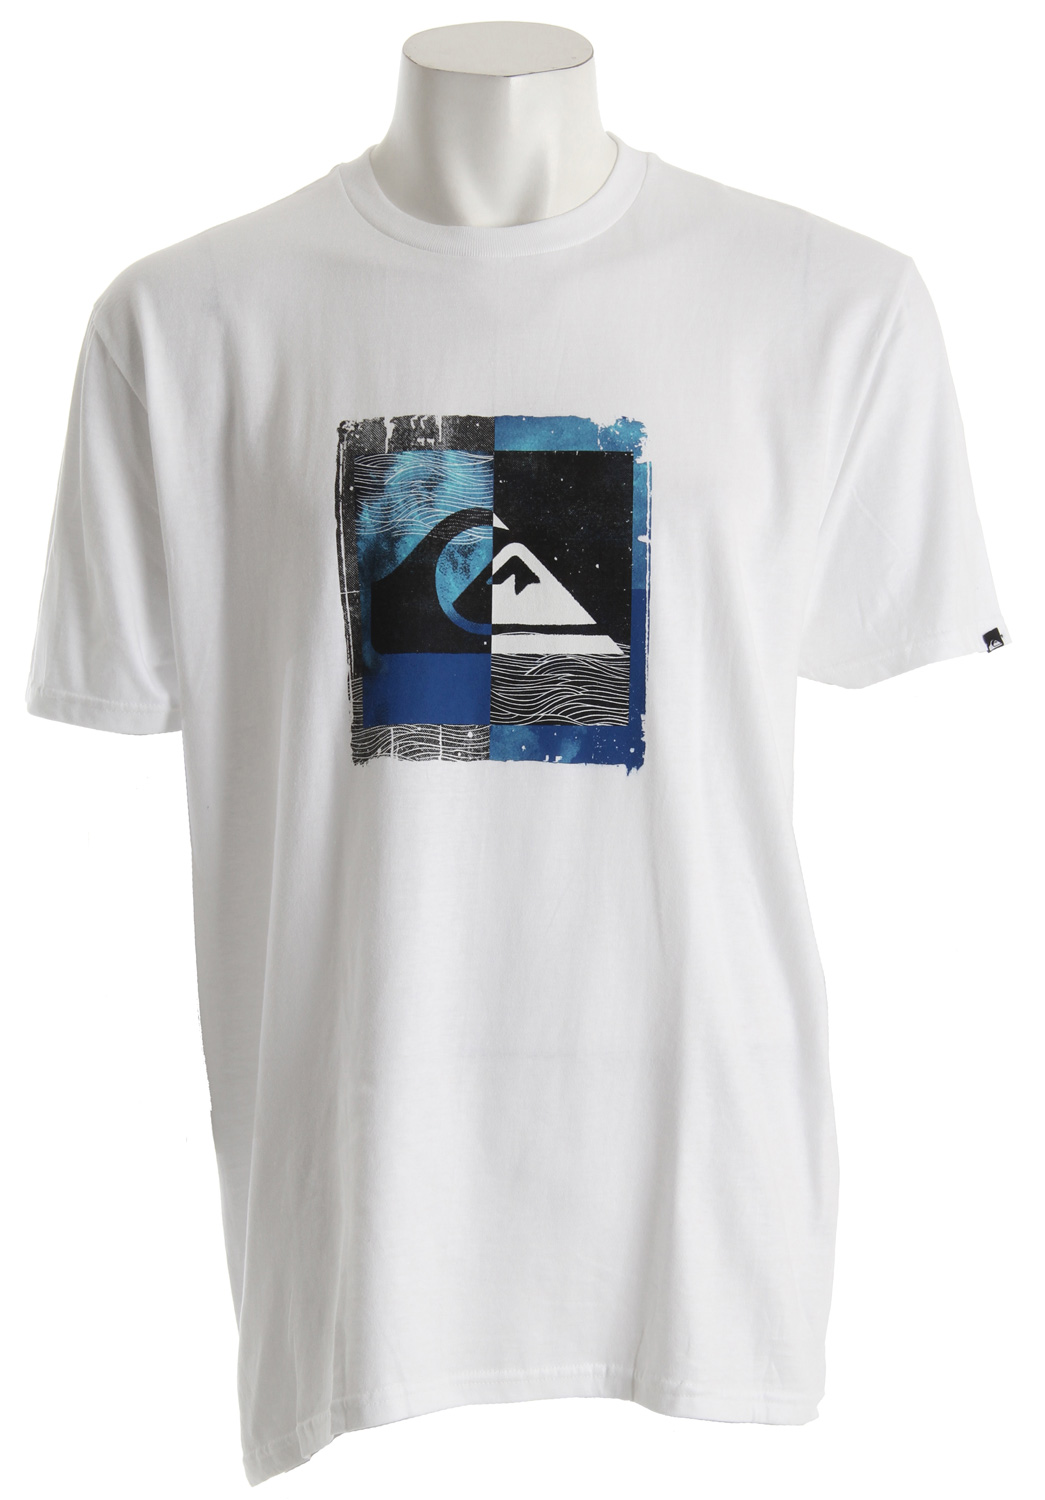 Surf Key Features of the Quiksilver Wallart T-Shirt: Solids: 100% Cotton Heathers: 50% Cotton, 50% Polyester Woven neck label - $19.95